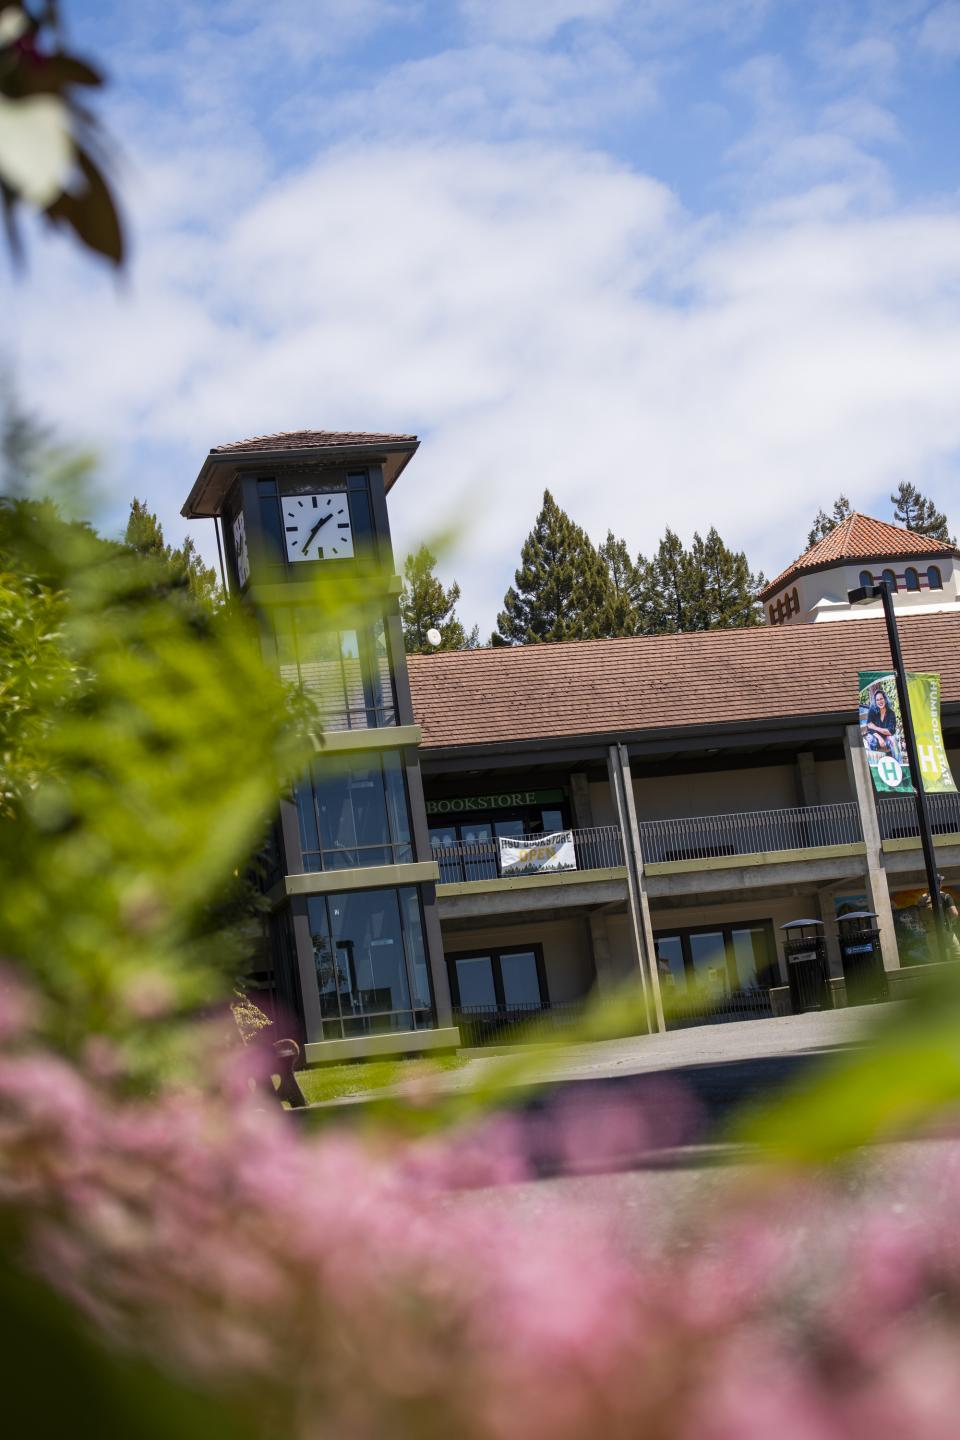 campus clock tower and book store